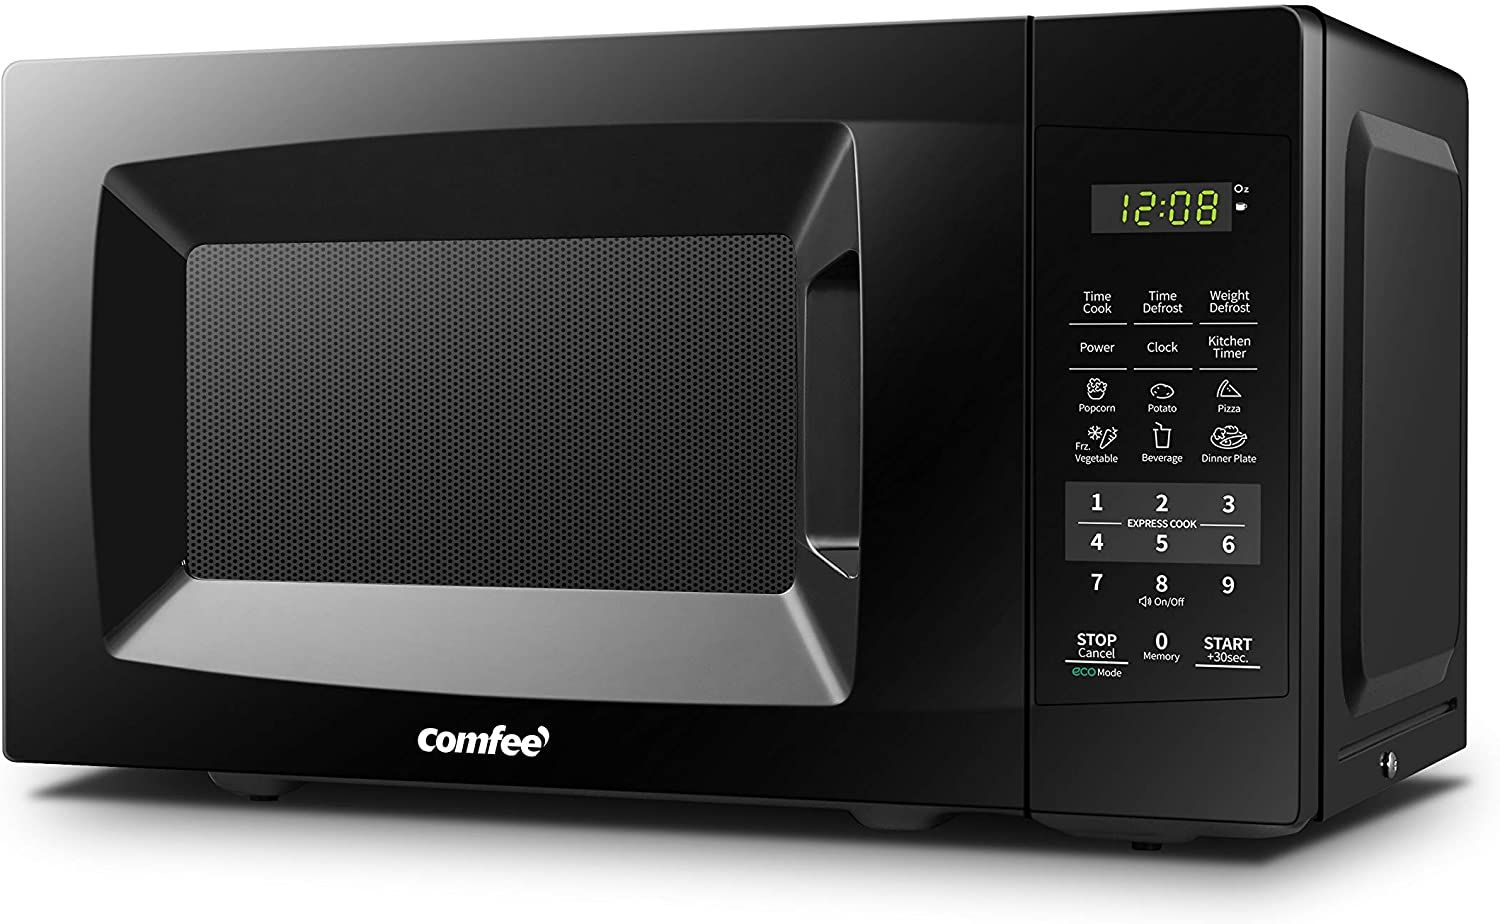 Comfee Em720cpl Pmb Countertop Microwave Oven With Sound On Off Eco Mode And Easy One Touch In 2020 Countertop Microwave Oven Countertop Microwave Compact Microwave